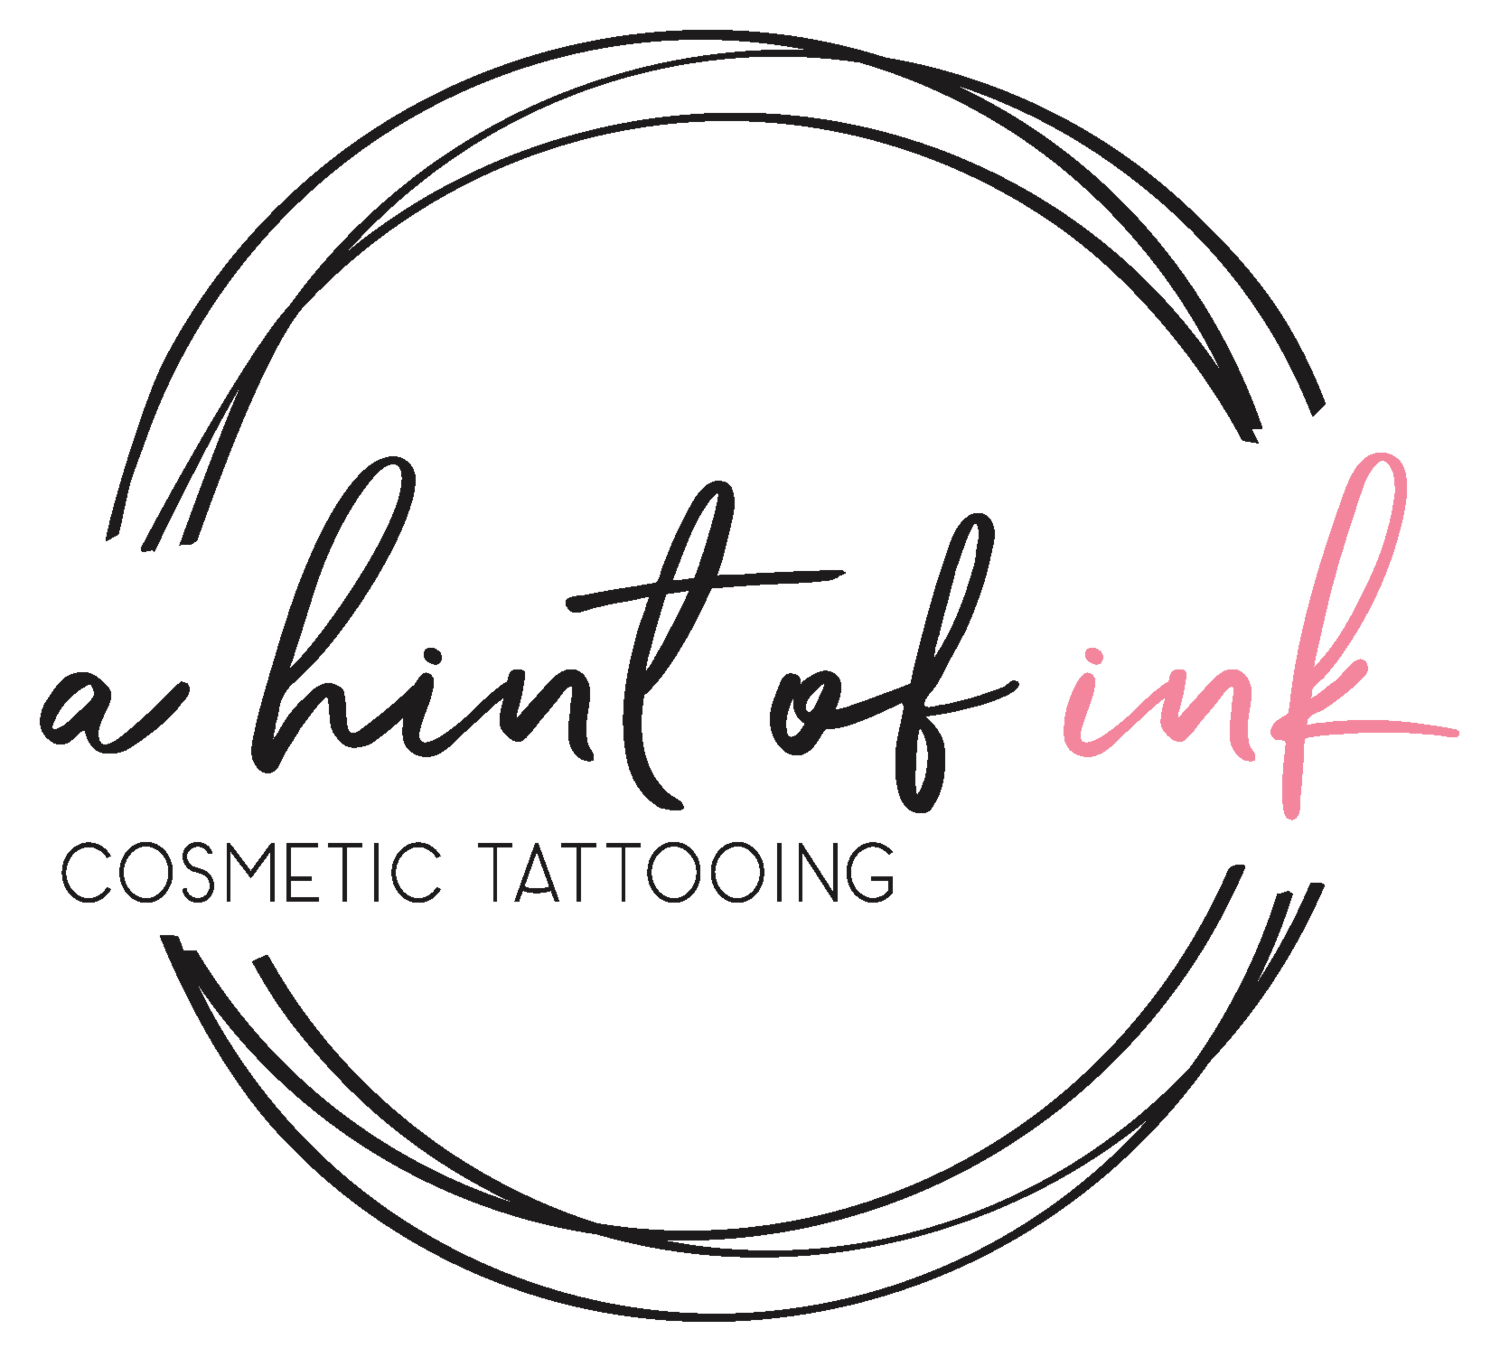 A HINT OF INK - Cosmetic Tattooing